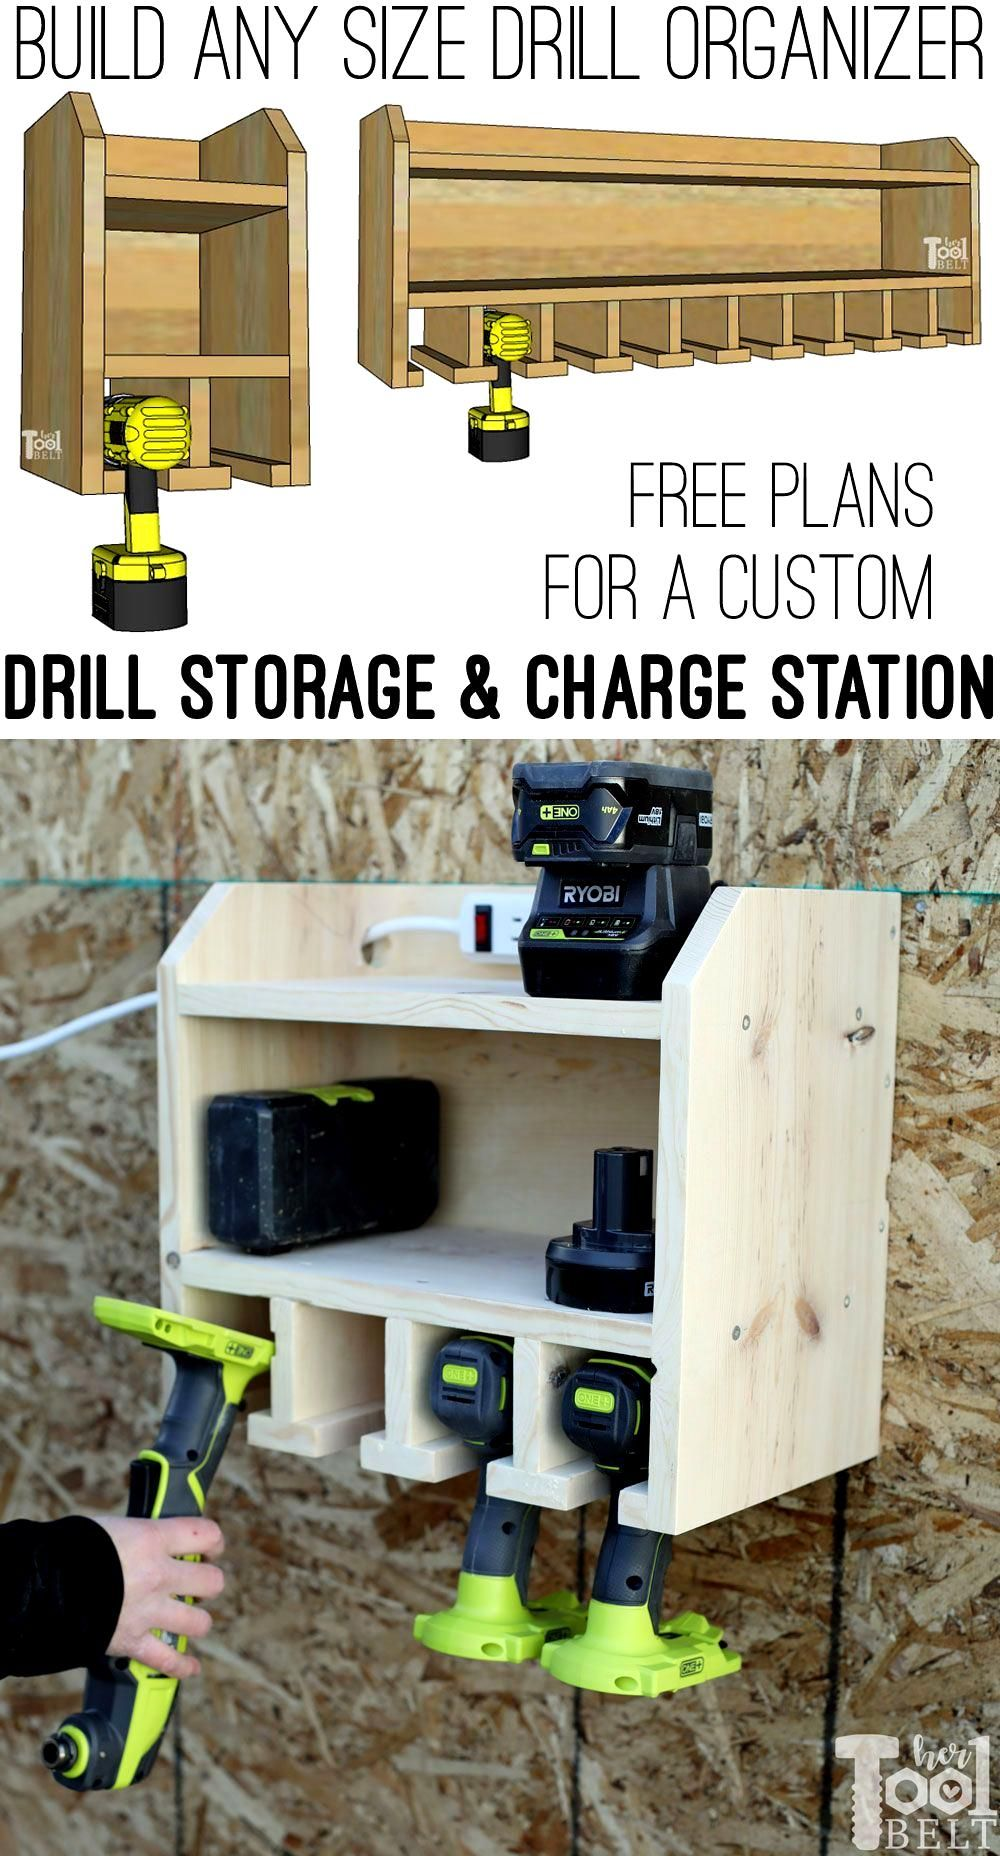 Organize Your Cordless Drills And Tools With A Custom Drill Storage And Charge Station For A In 2020 Tool Storage Diy Power Tool Storage Woodworking Projects That Sell